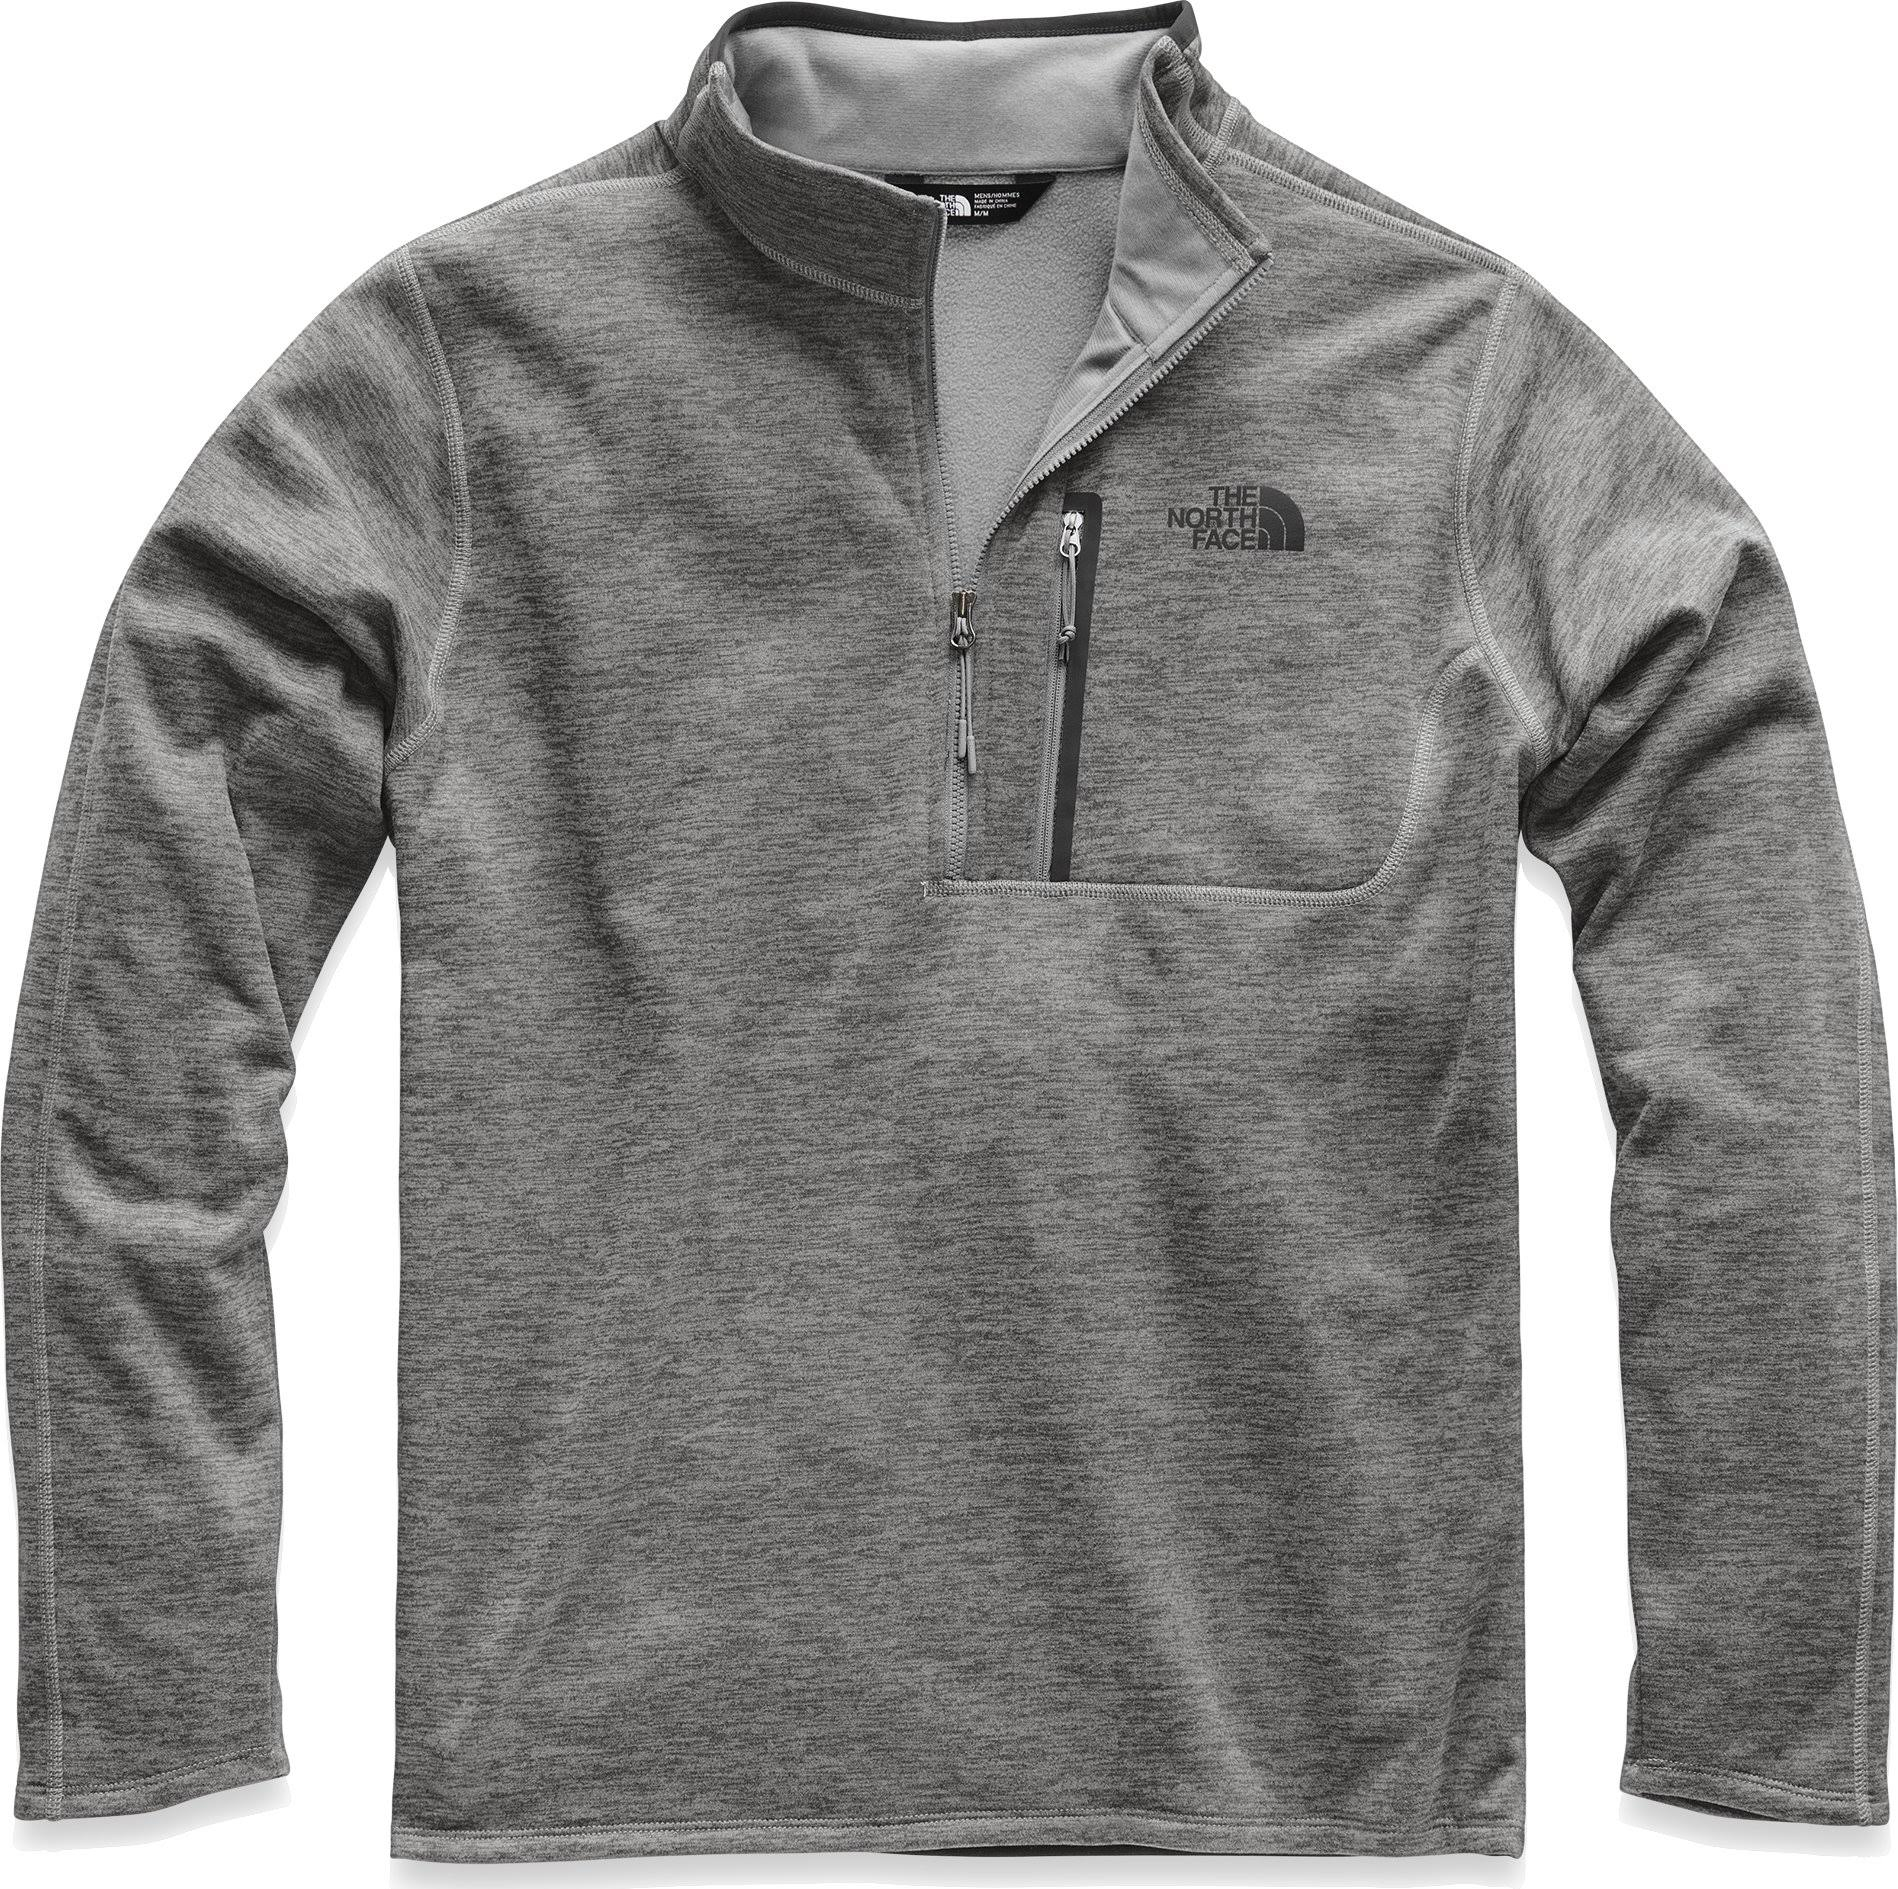 The North Face Men's Canyonlands 1/2 Zip TNF Medium Grey Heather XL